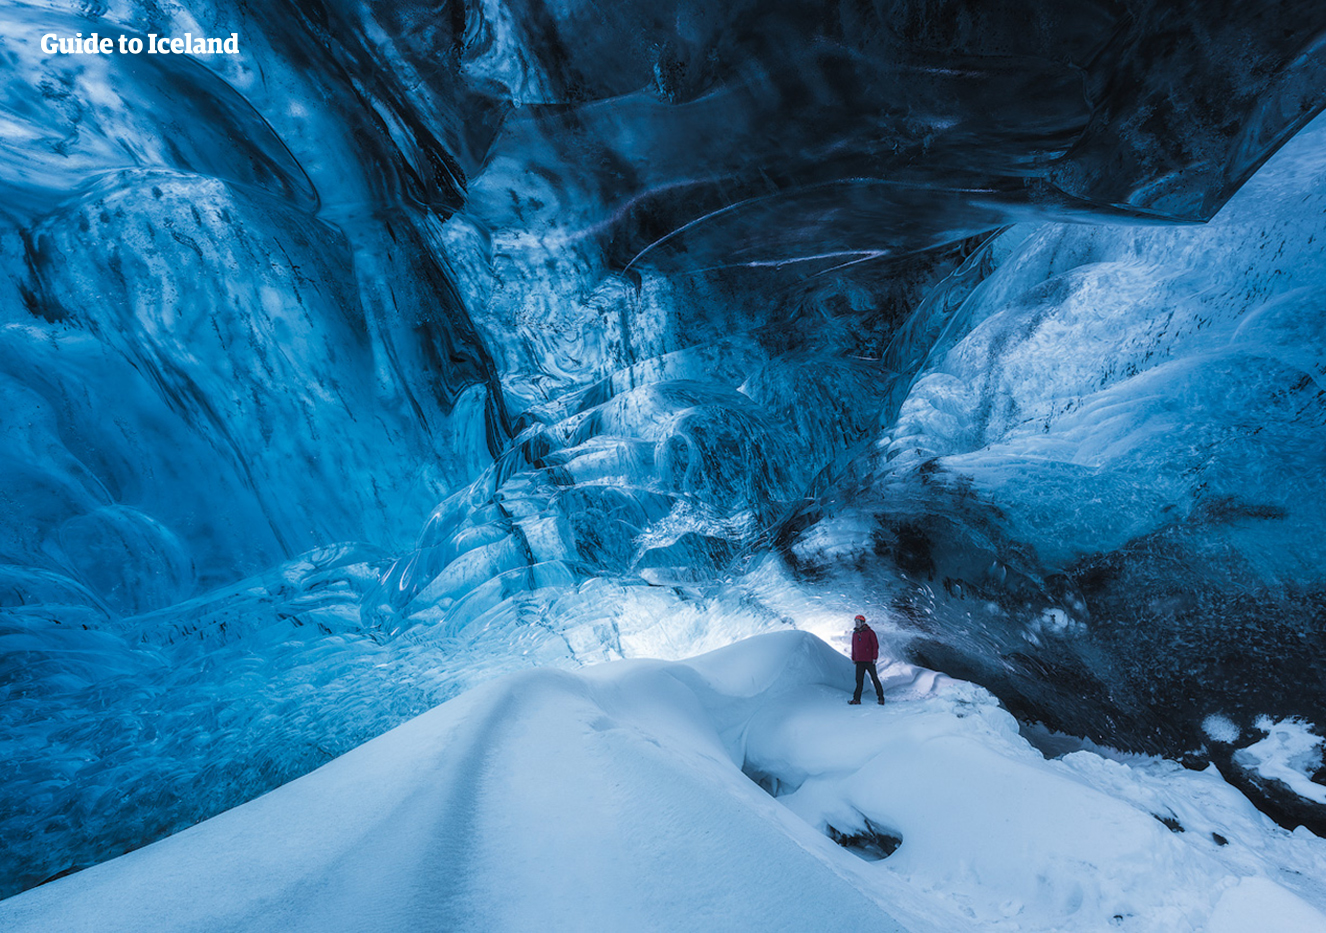 The ice caves beneath the glacier of Vatnajökull look so beautiful that they belong in a fantasy novel more than the real world.